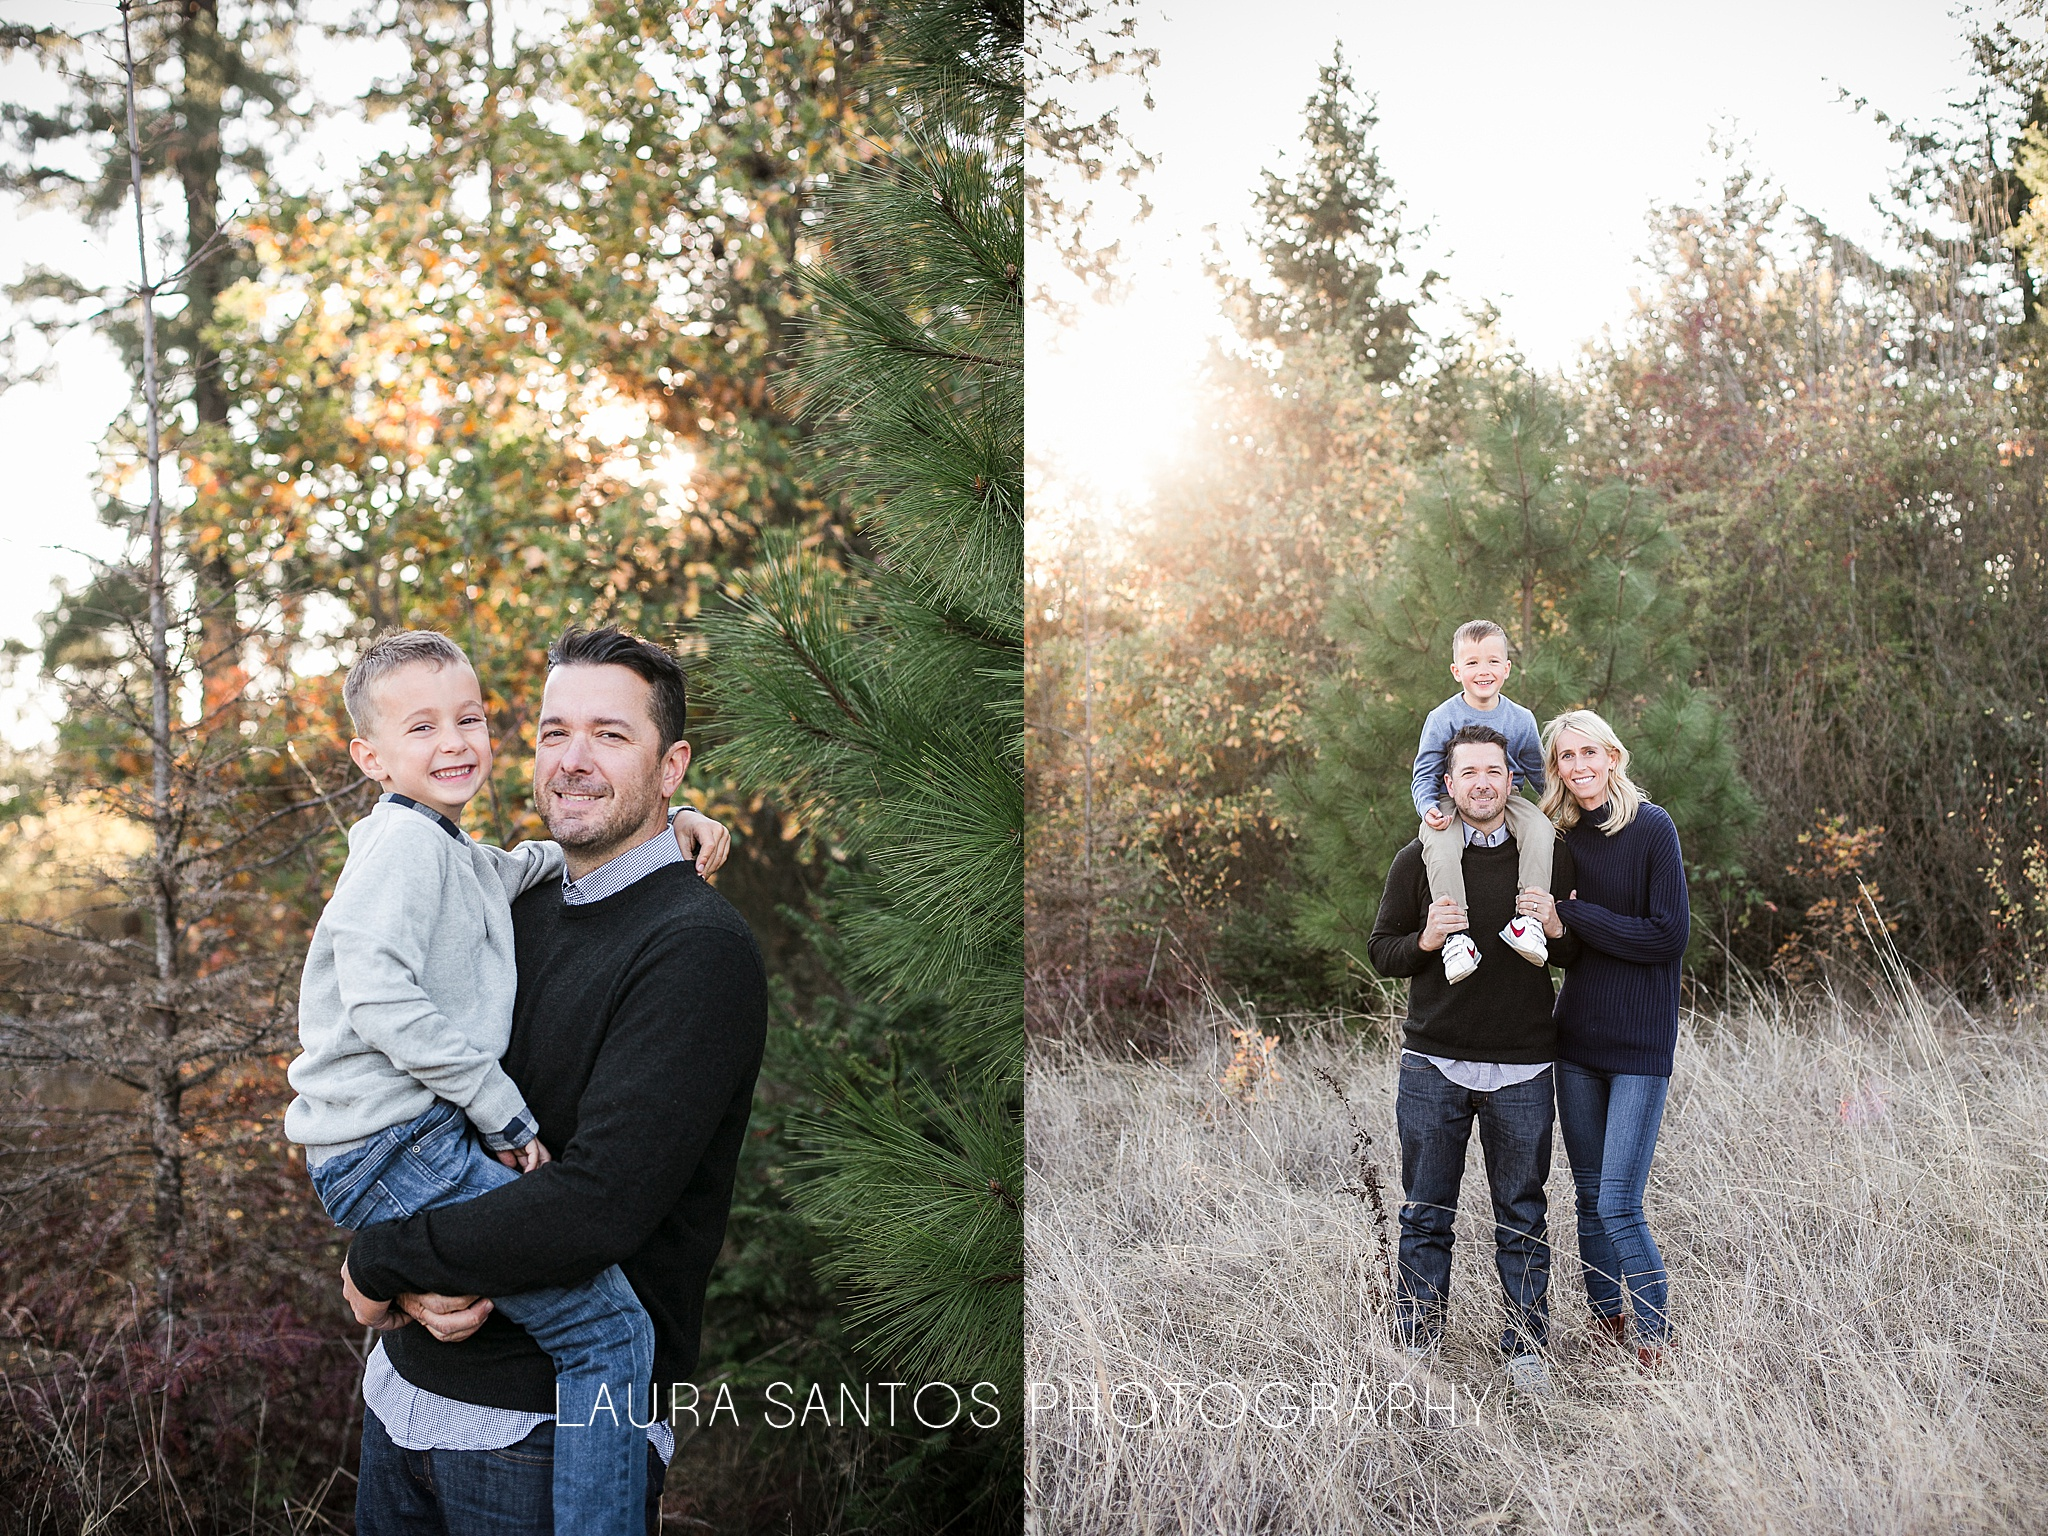 Laura Santos Photography Portland Oregon Family Photographer_0825.jpg